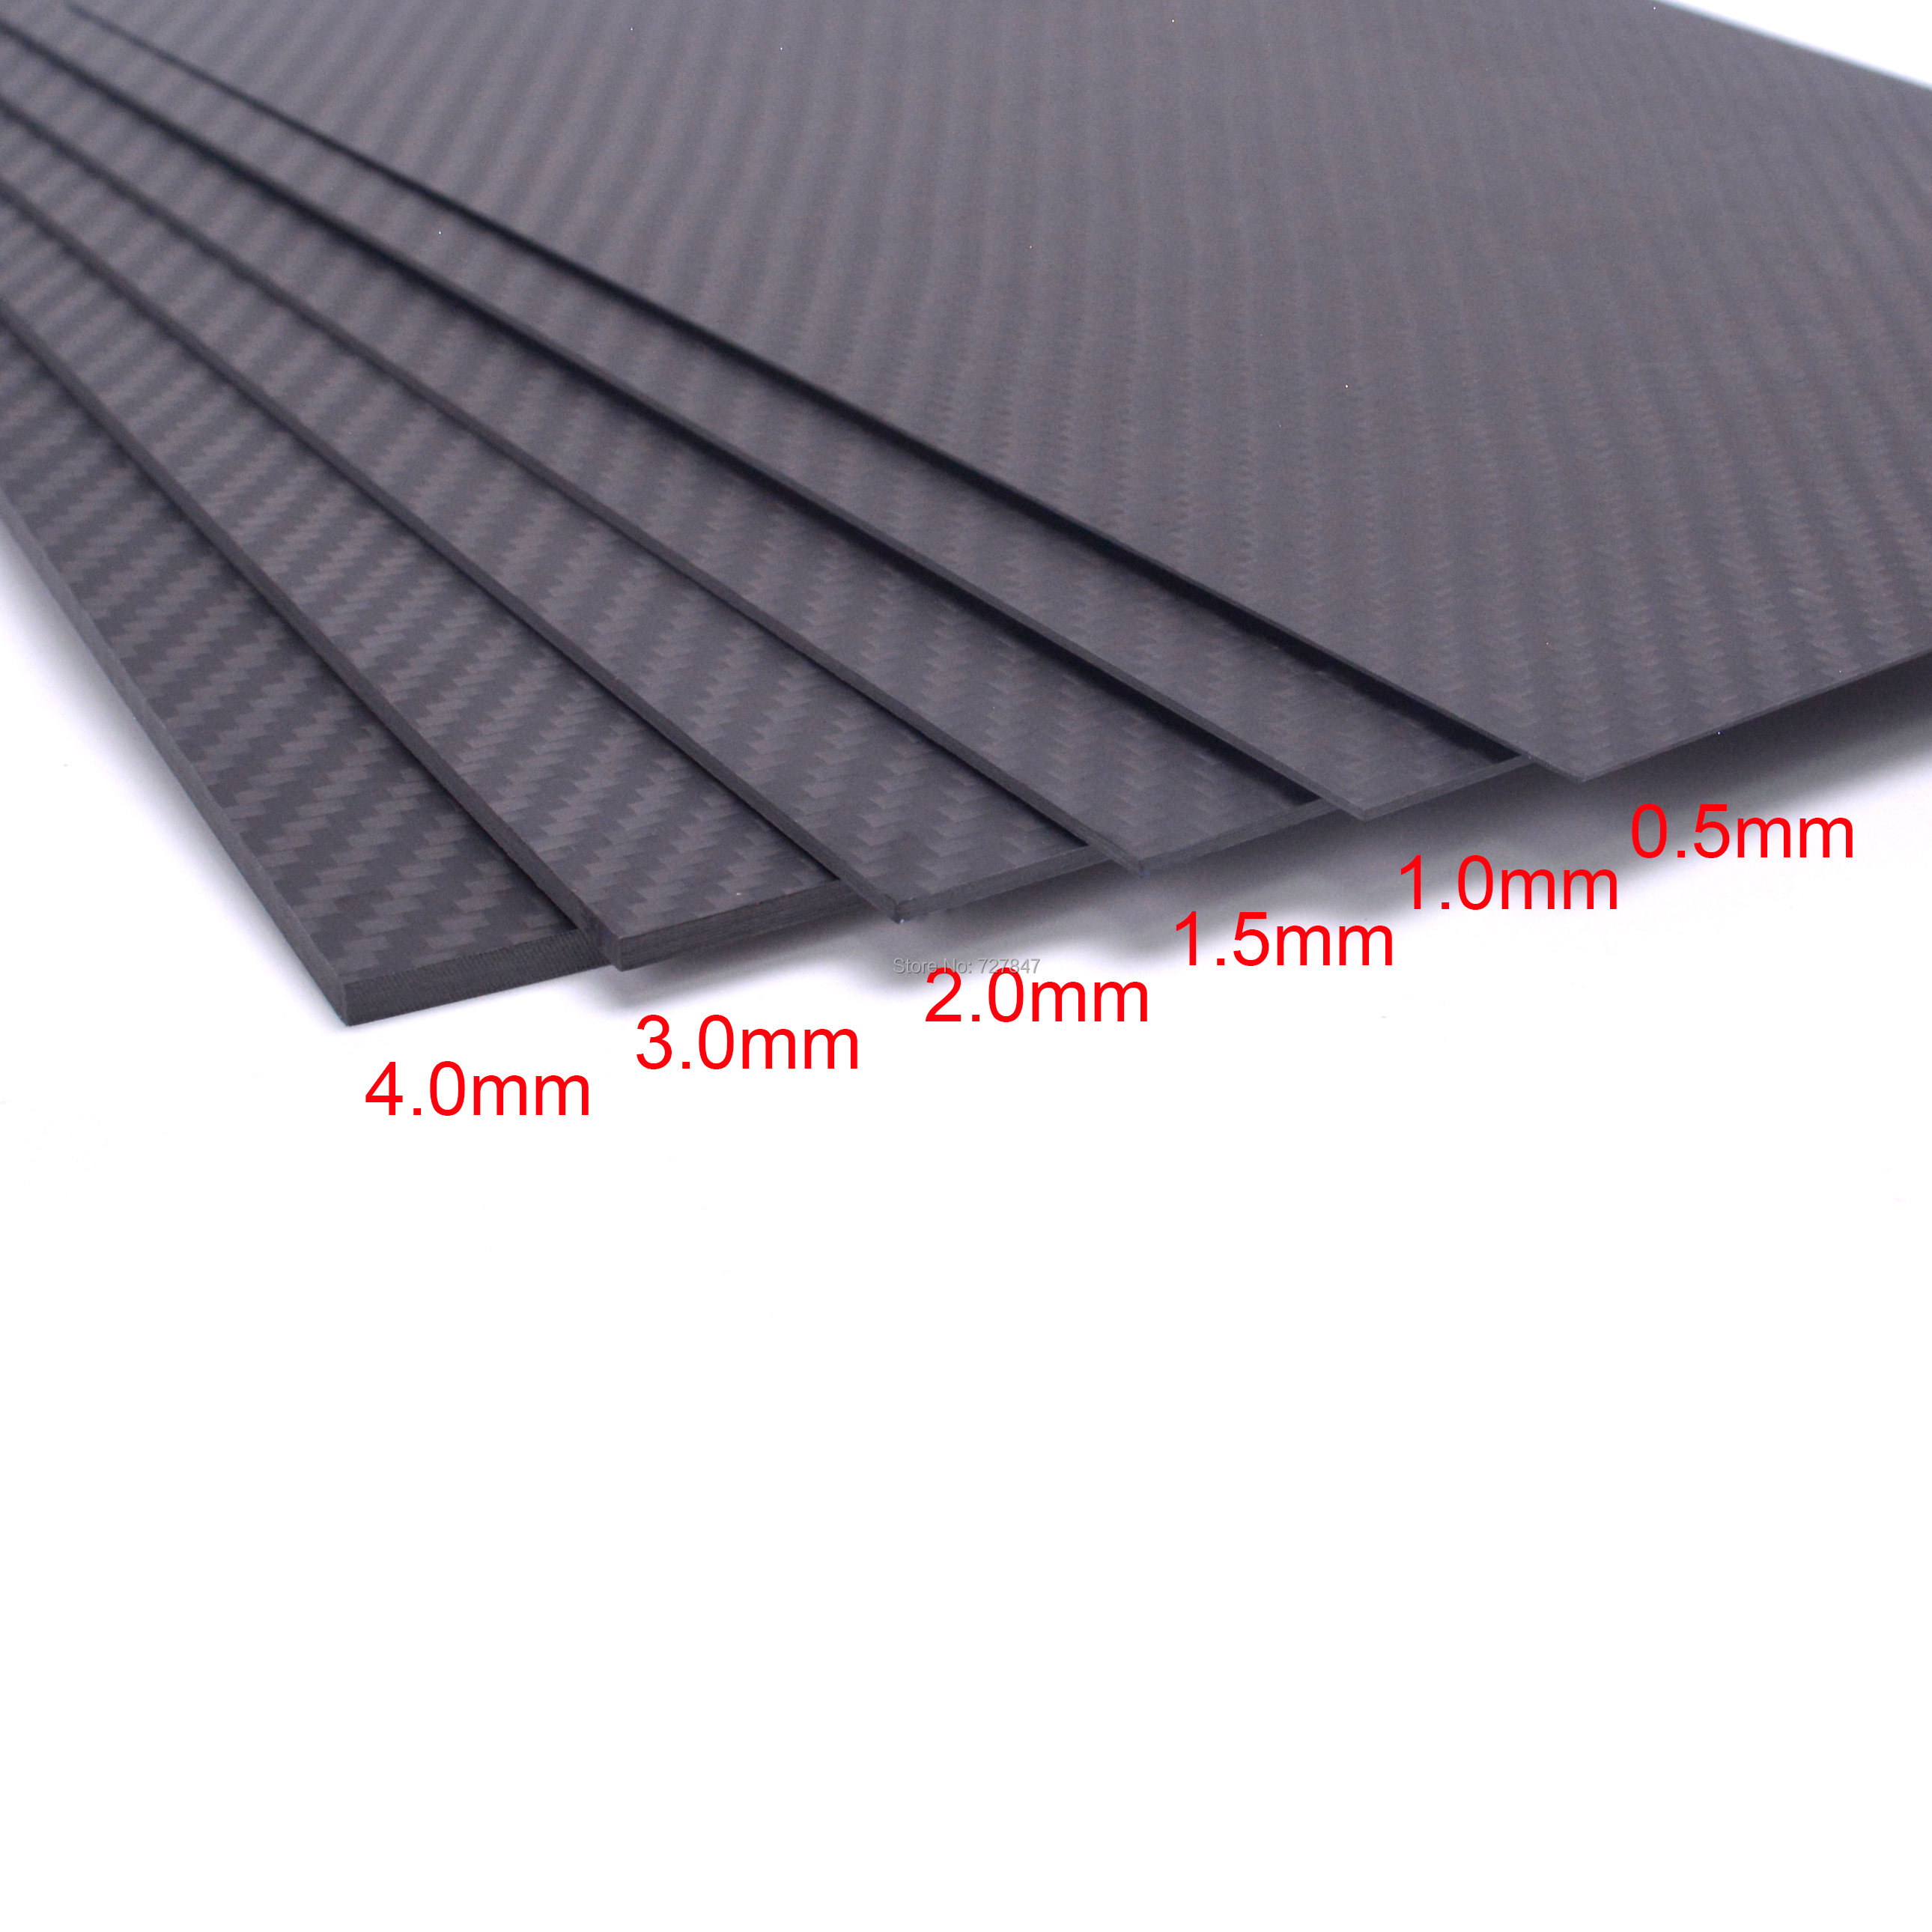 CARBON FIBRE ANGLE 2mm x 25mm x 25mm x 190mm long Prepreg shiny both sides epoxy